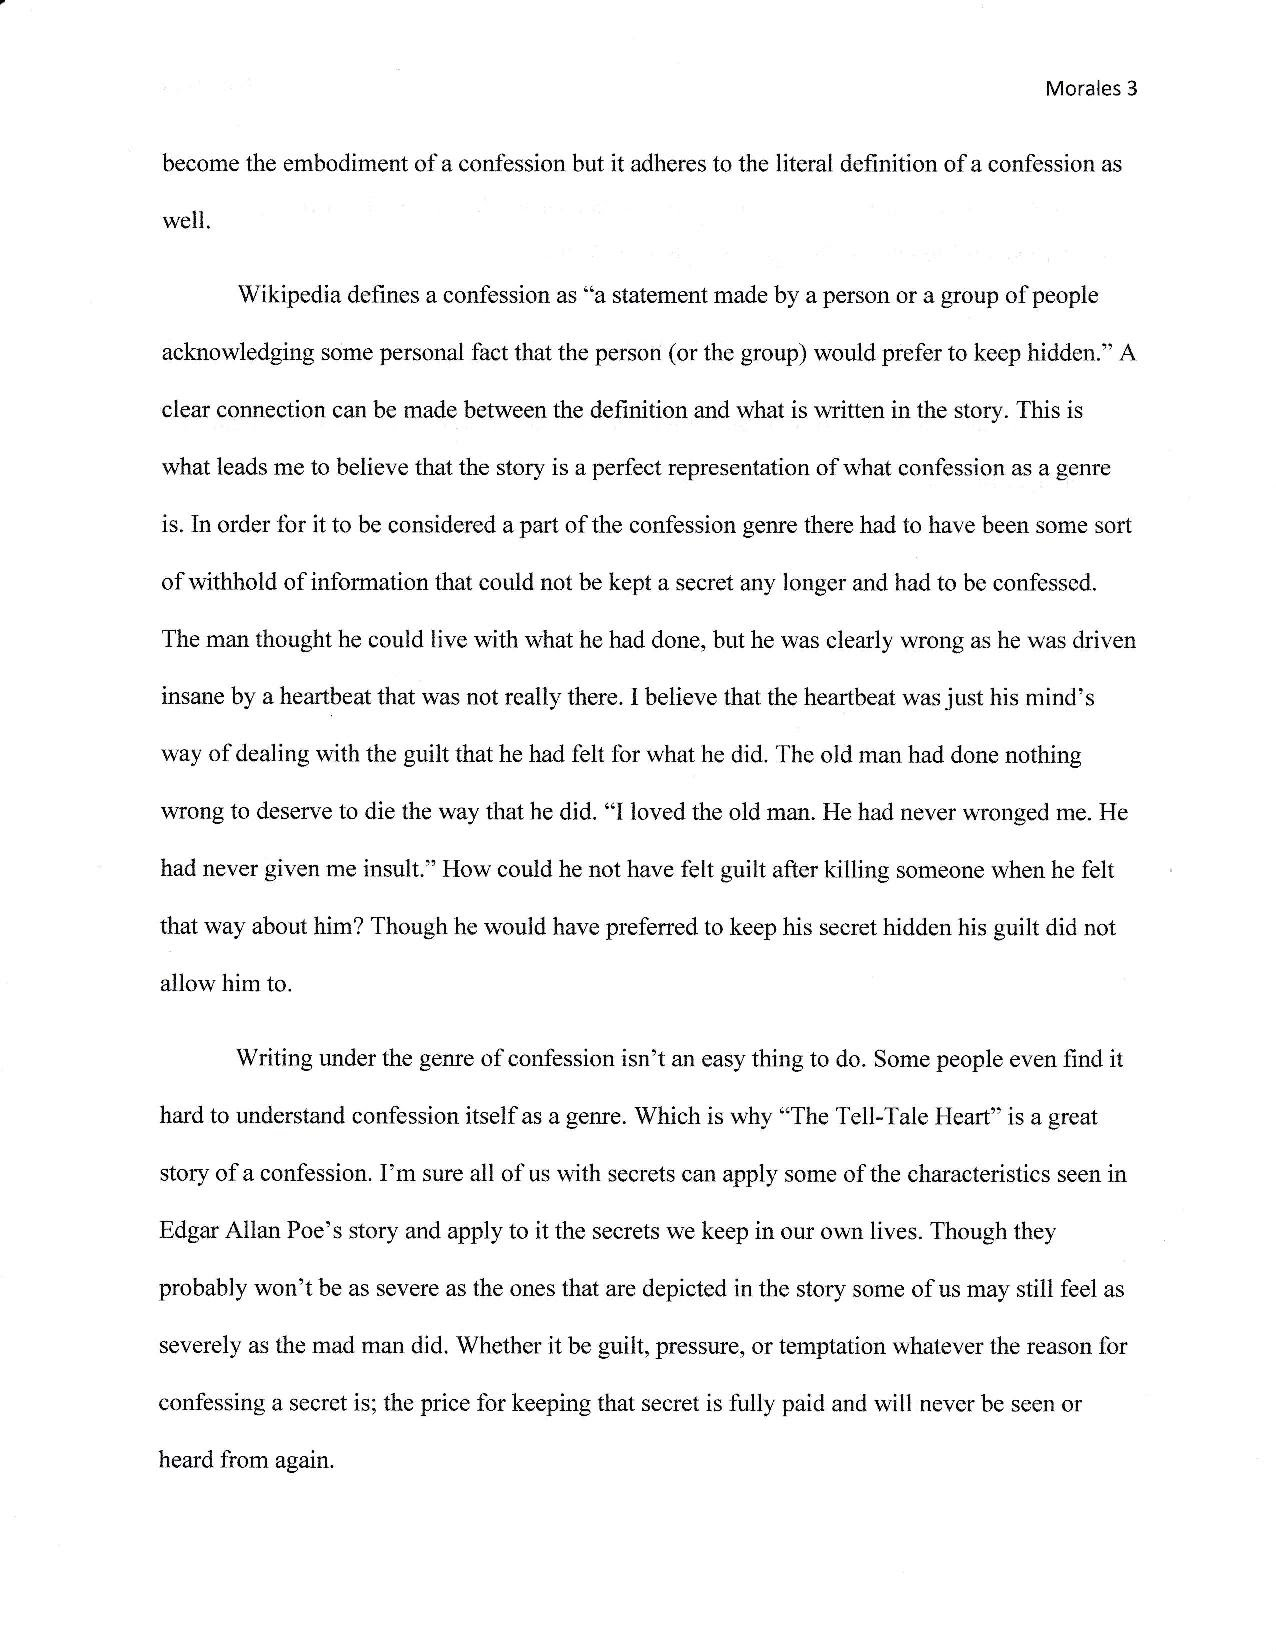 poe essay examples characterization essays on edgar allan poe by  critical reading essay draft omar morales writing portfolio writing didn t so much show potential but